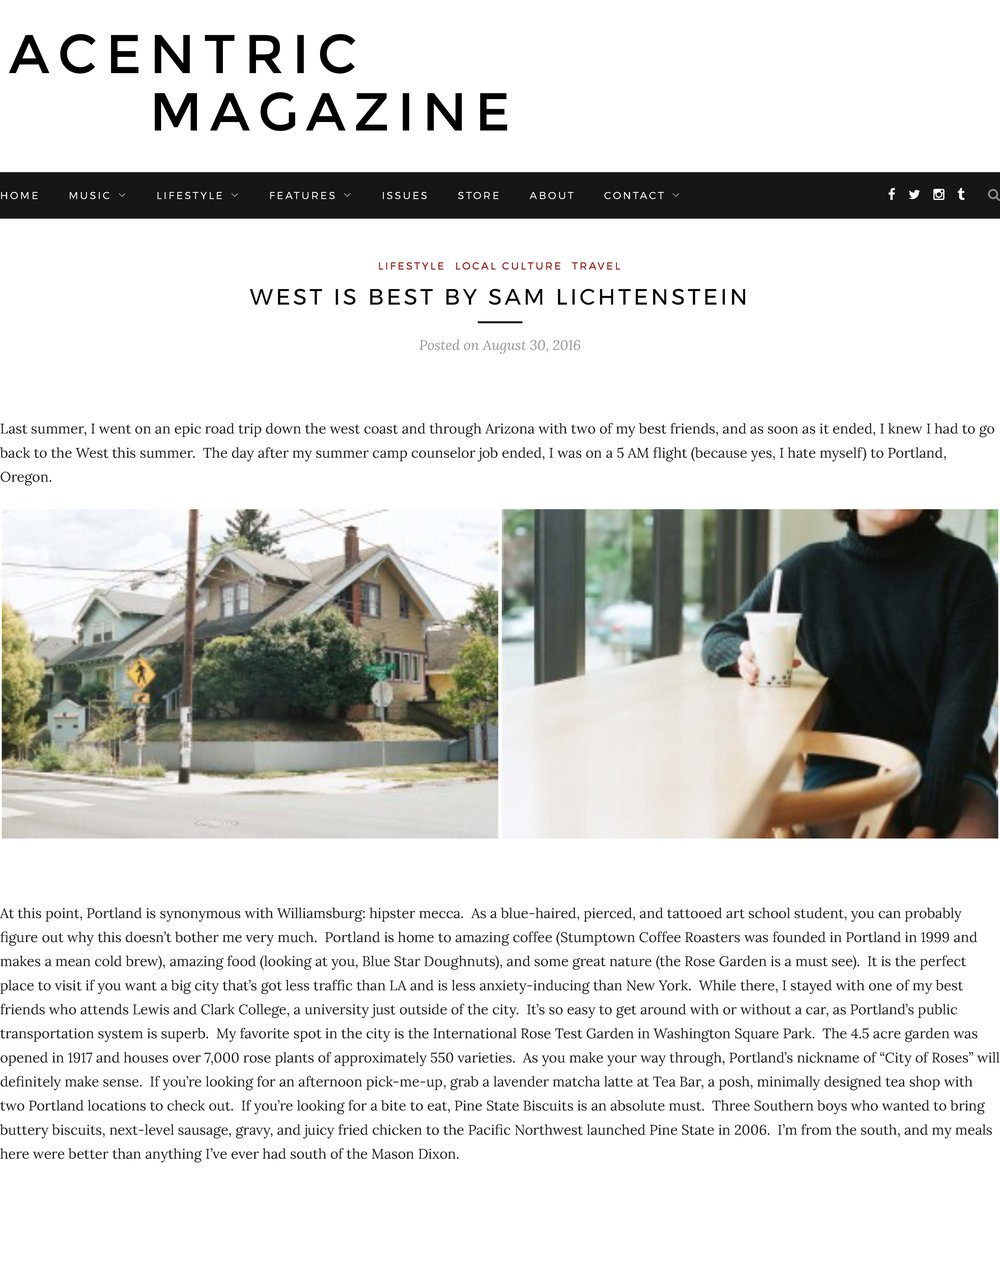 West is Best by Sam Lichtenstein – Acentric Magazine_Page_1.jpg